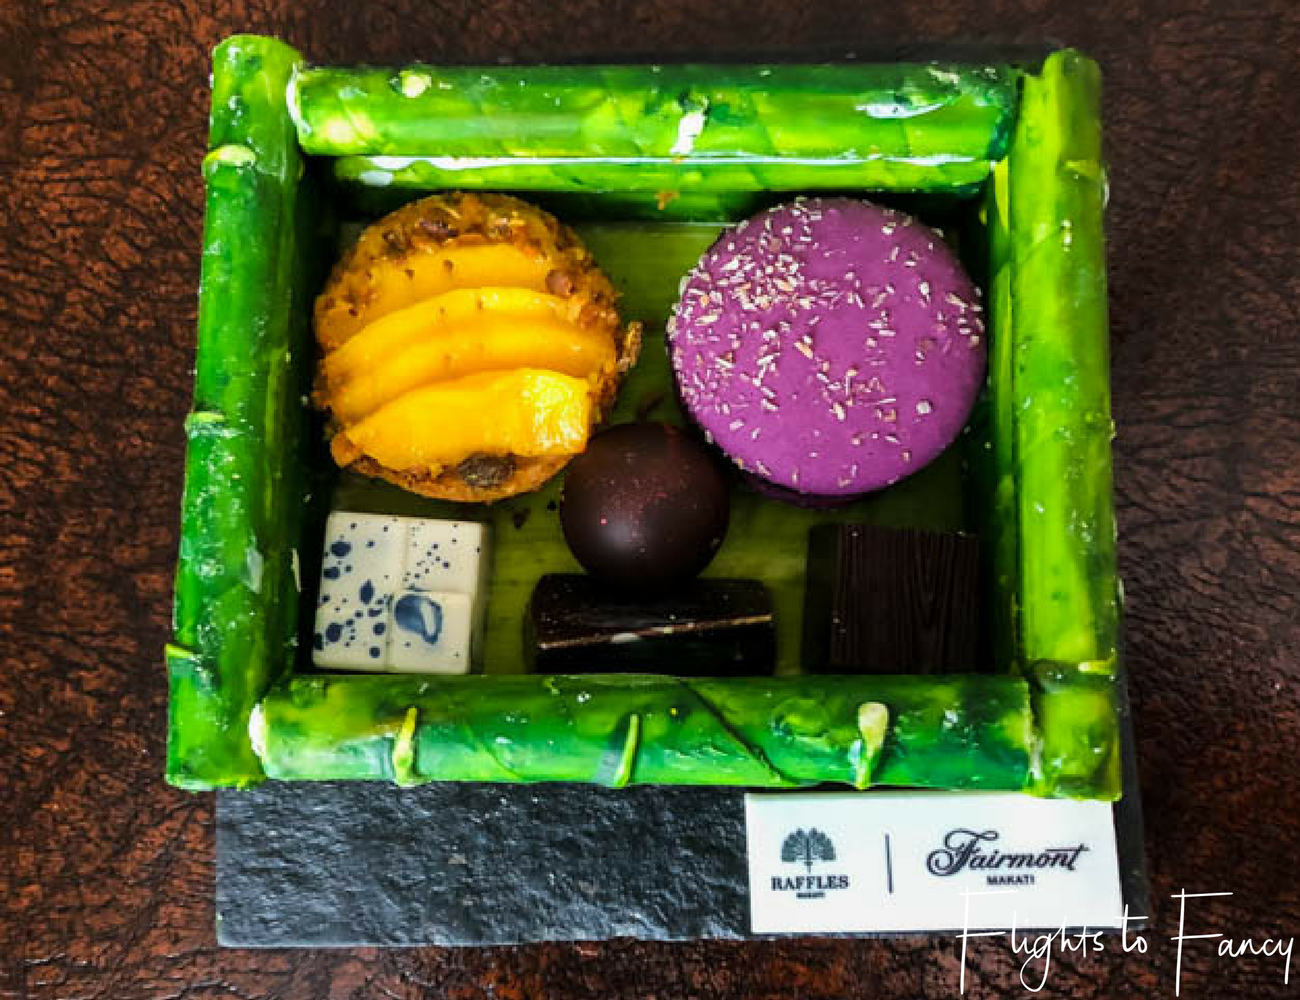 Flights To Fancy at Raffles Makati - Fancy chocolate art is one of the perks of staying at luxury hotels in Manila